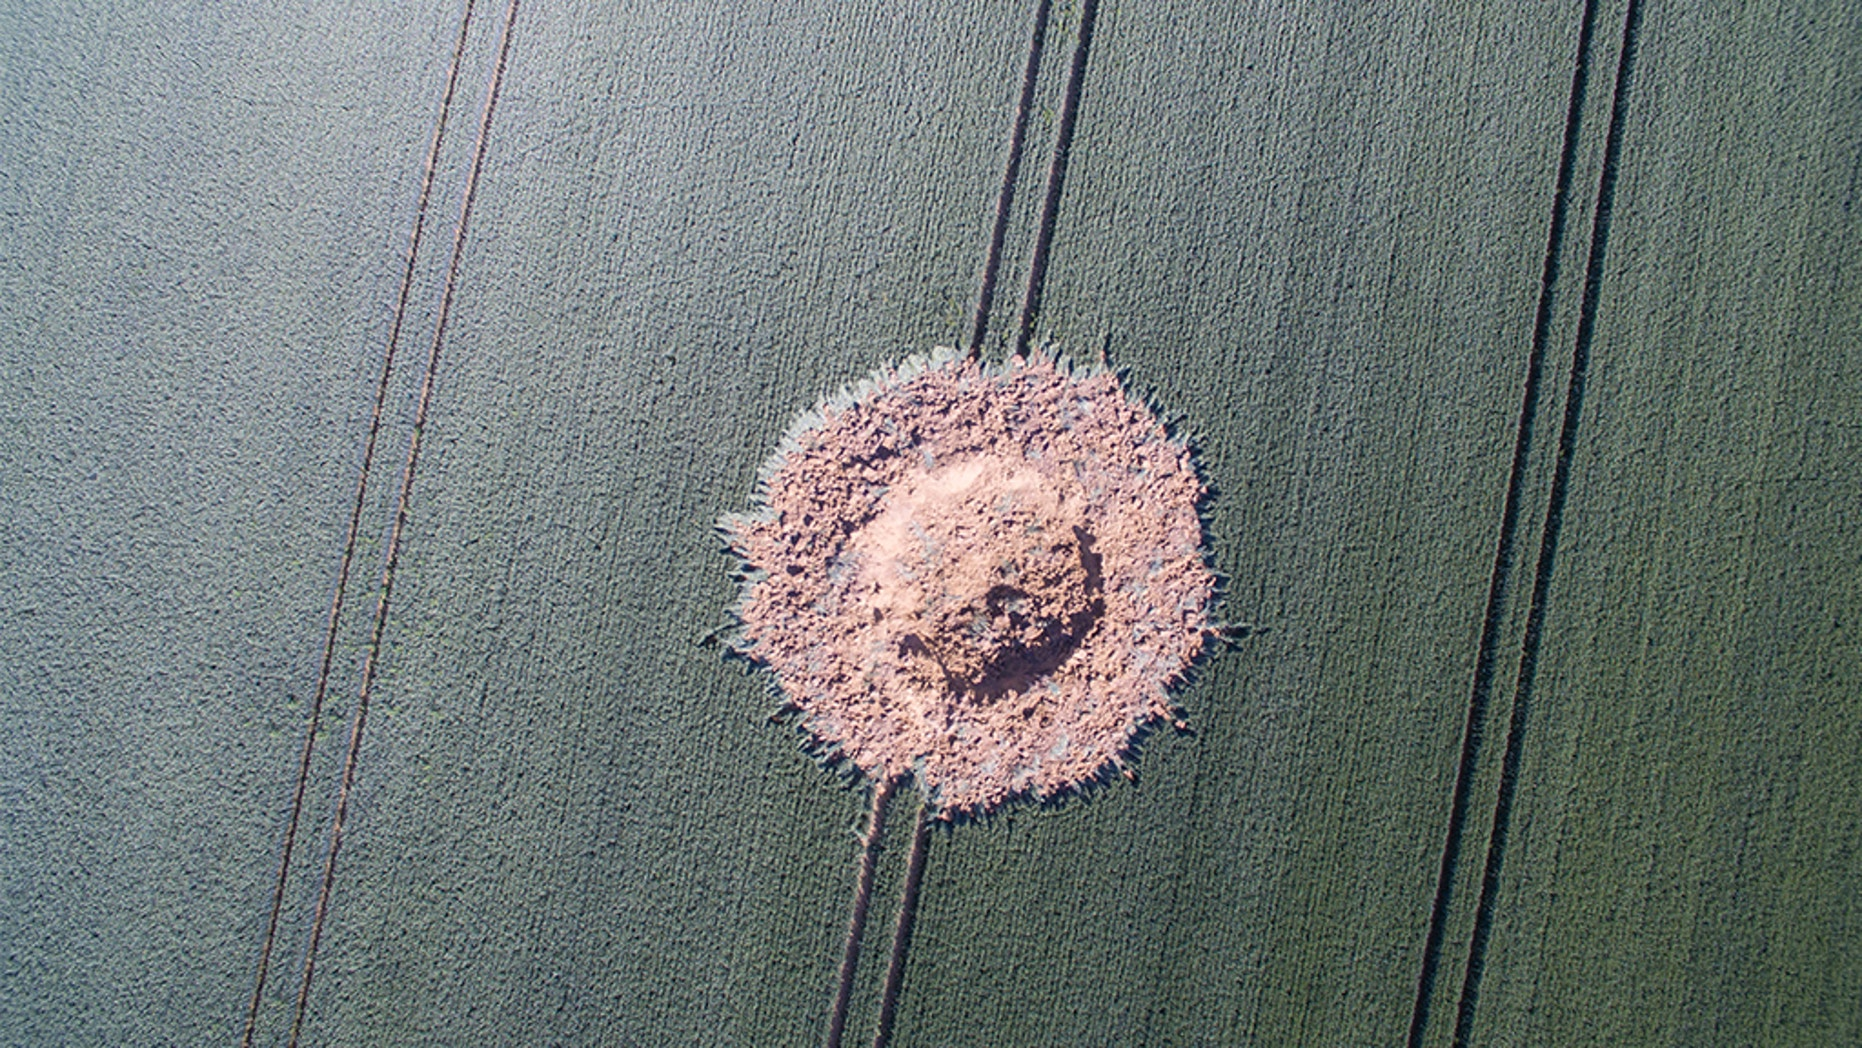 A big crater is pictured on a corn field after a bomb from the World War exploded in Halbach, Germany, Monday, June 24, 2019. The bomb must have stayed under the corn field since the World War until the chemical detonator reacted in the end. No one was injured. (Boris Roessler/dpa via AP)